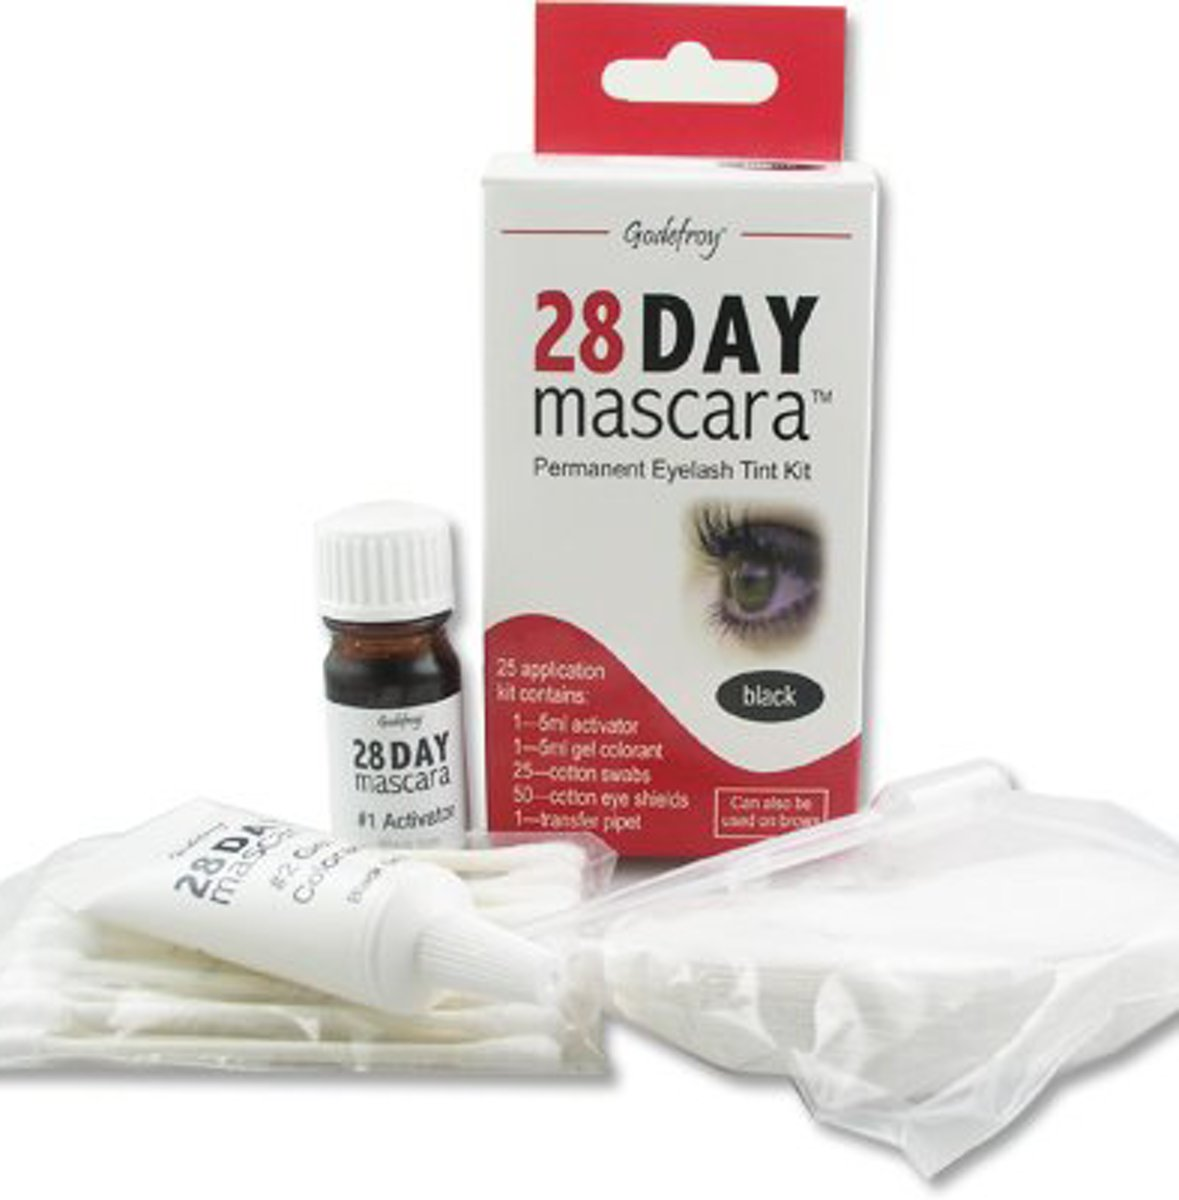 28 Day Mascara Wimperverf voor Thuis by Godefroy - Semi-permanente Mascara in Donkerbruin / Brown - 25 Applicaties